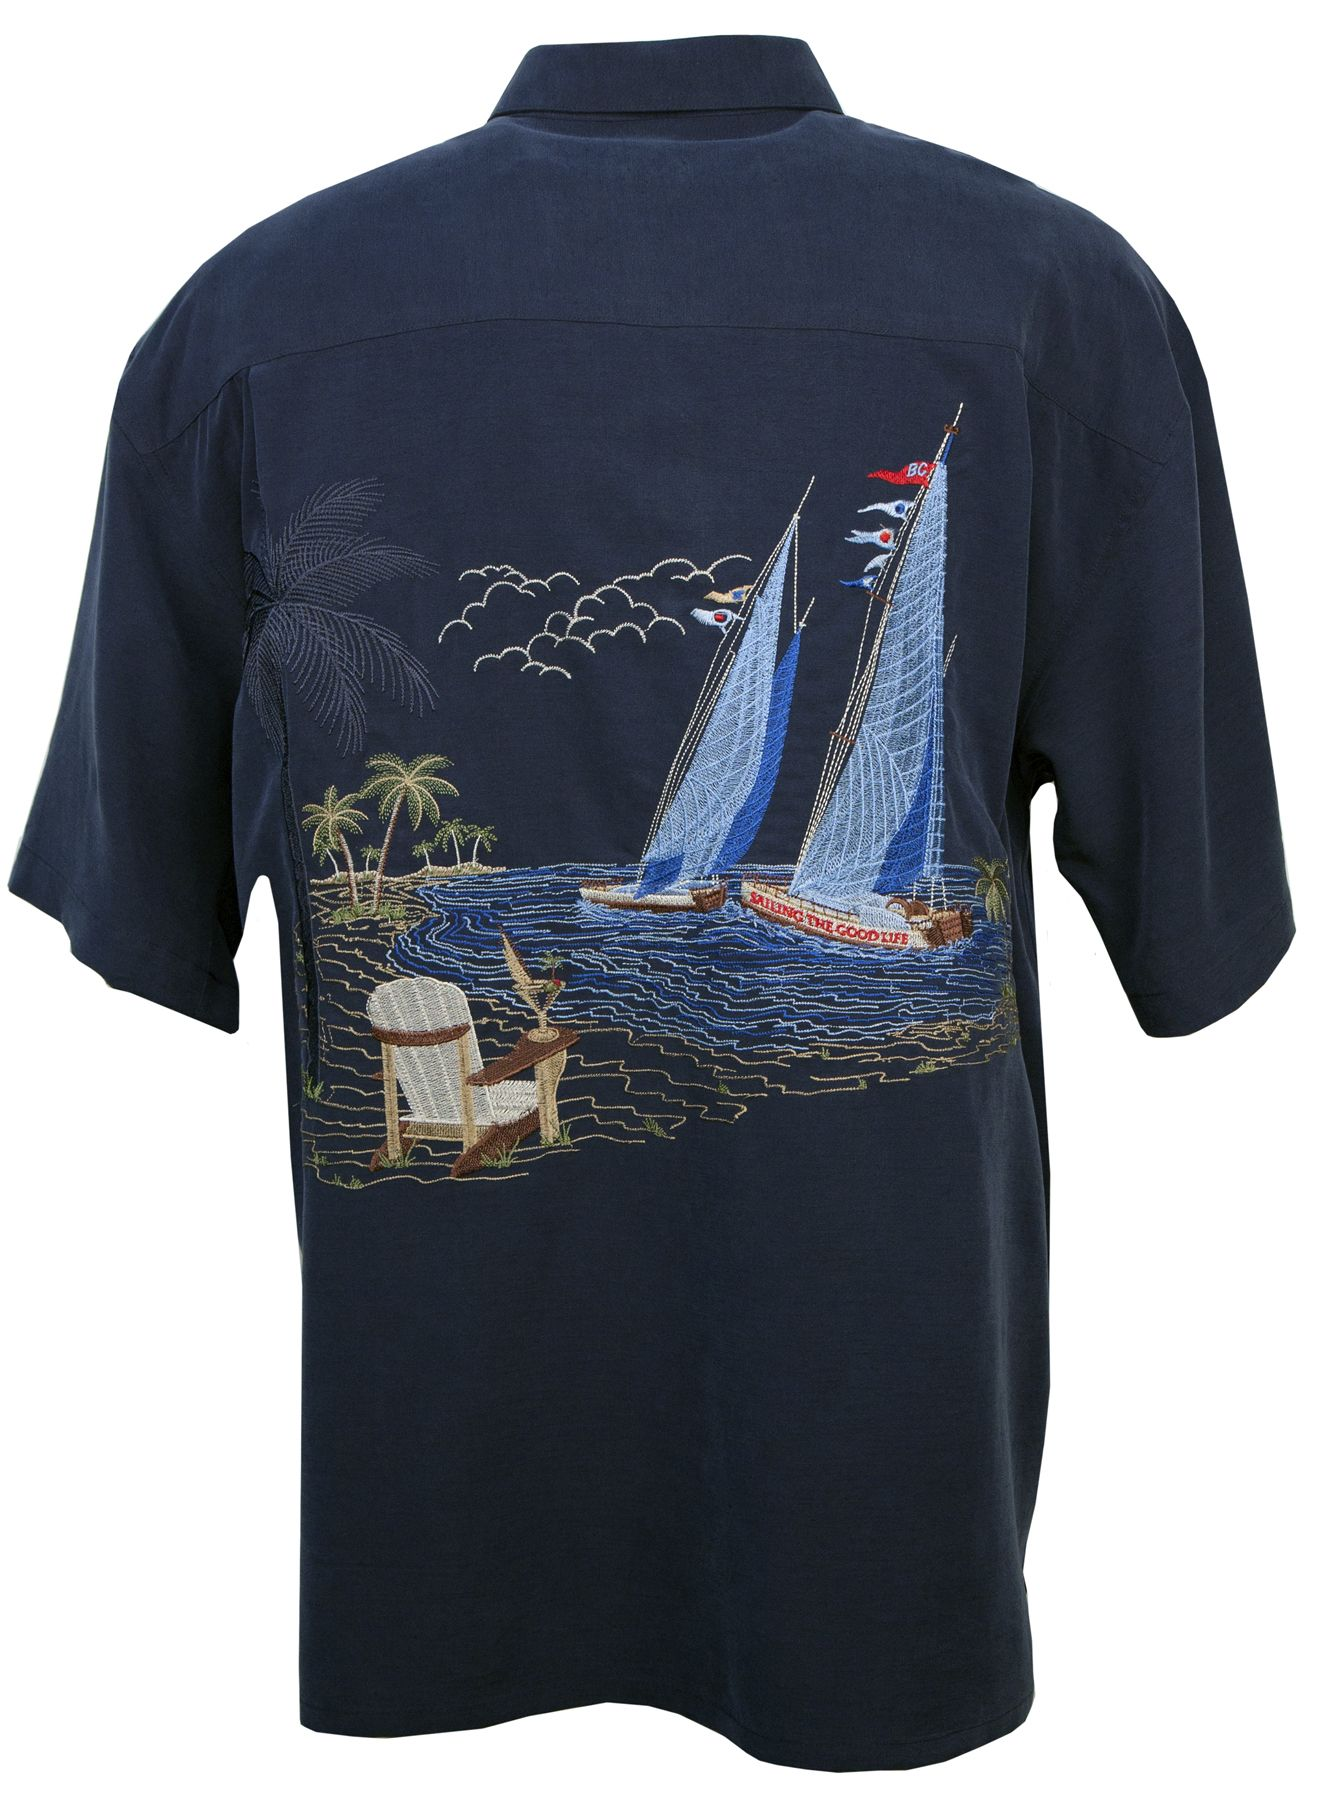 Bamboo Cay - The Good Life - Tropical Embroidered Shirt - Navy, Men's Tropical Hawaiian Clothing, BBC-WB-555-Navy - Paradise Clothing Company